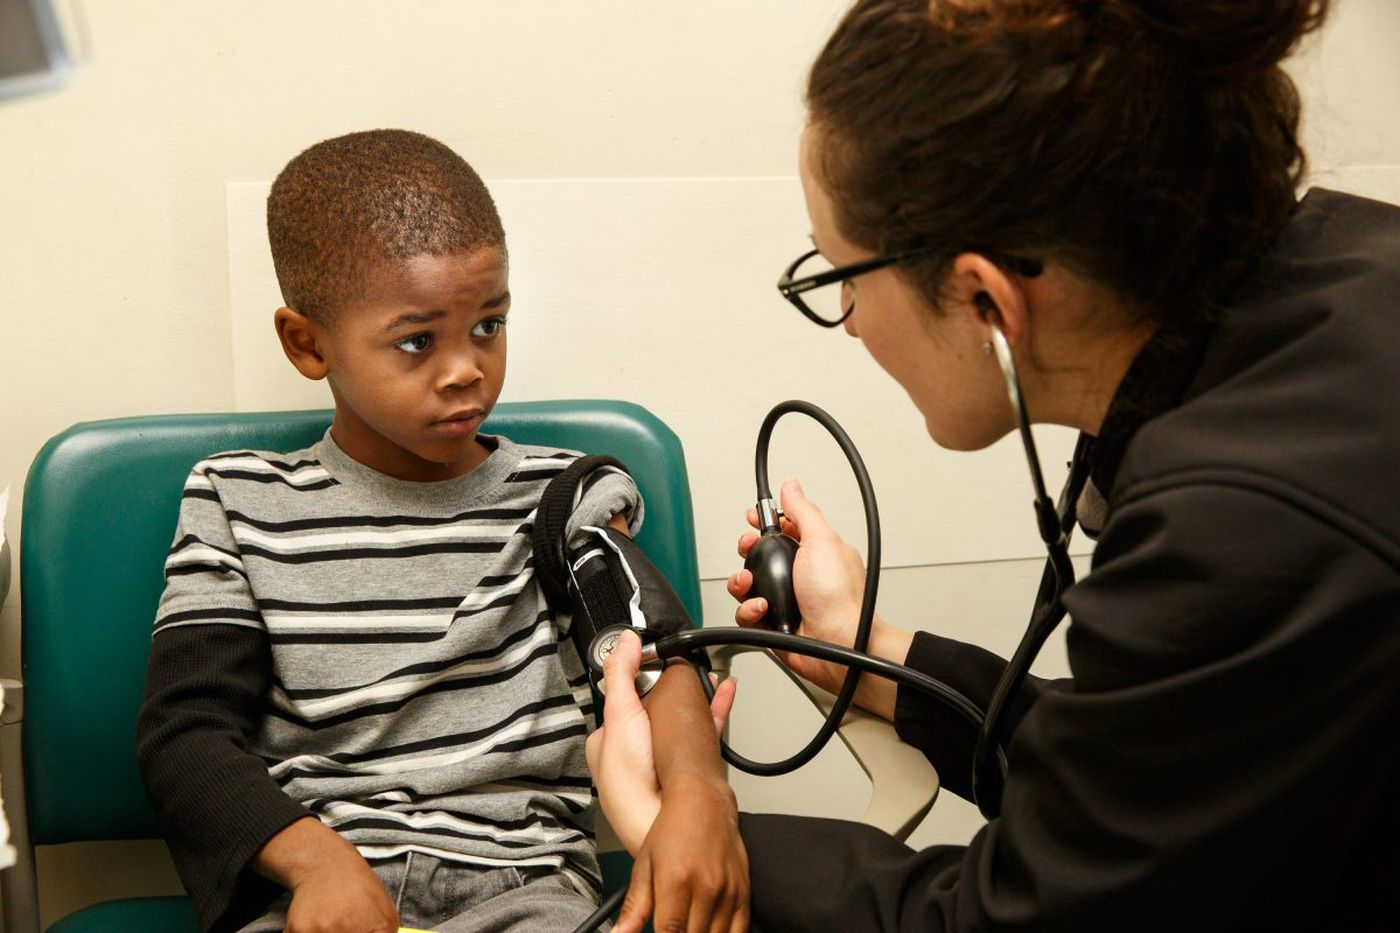 New guidelines mean more kids will be diagnosed with high blood pressure - and that's a good thing